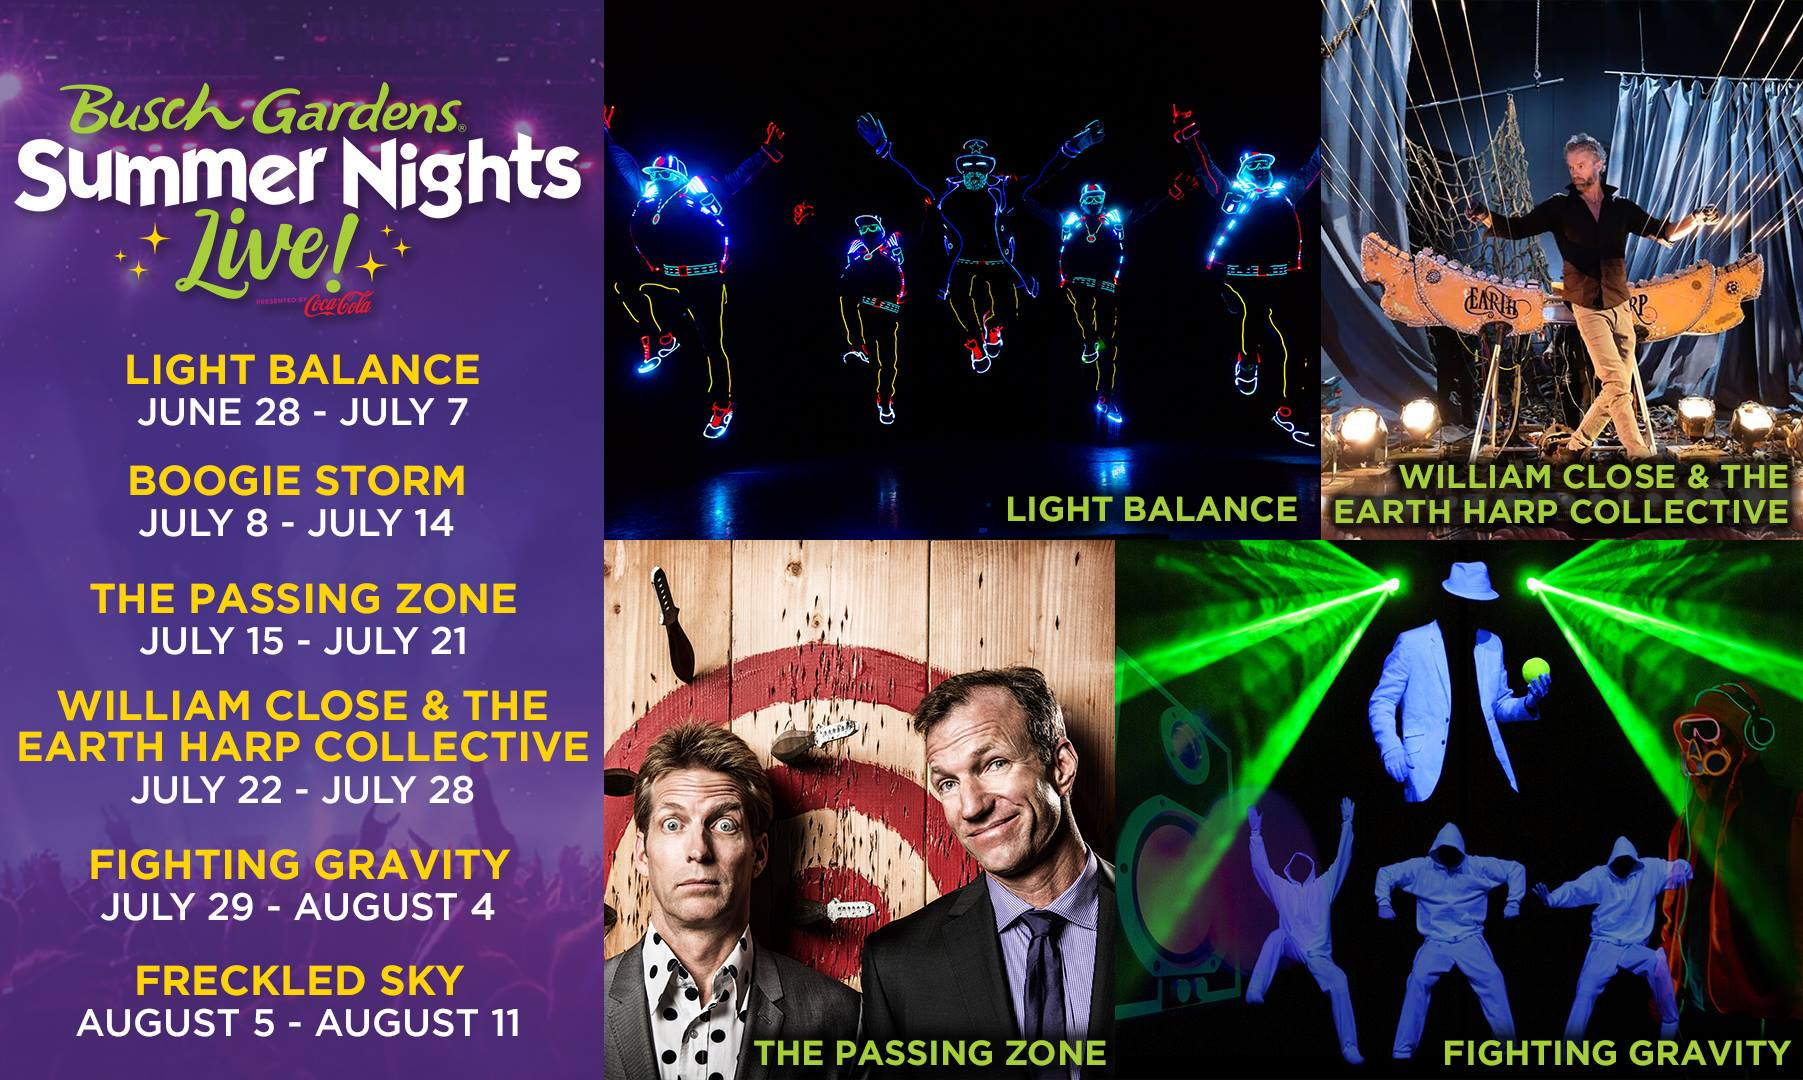 Find Out What Concerts are Coming to Summer Nights Live at Busch Gardens Williamsburg in 2019